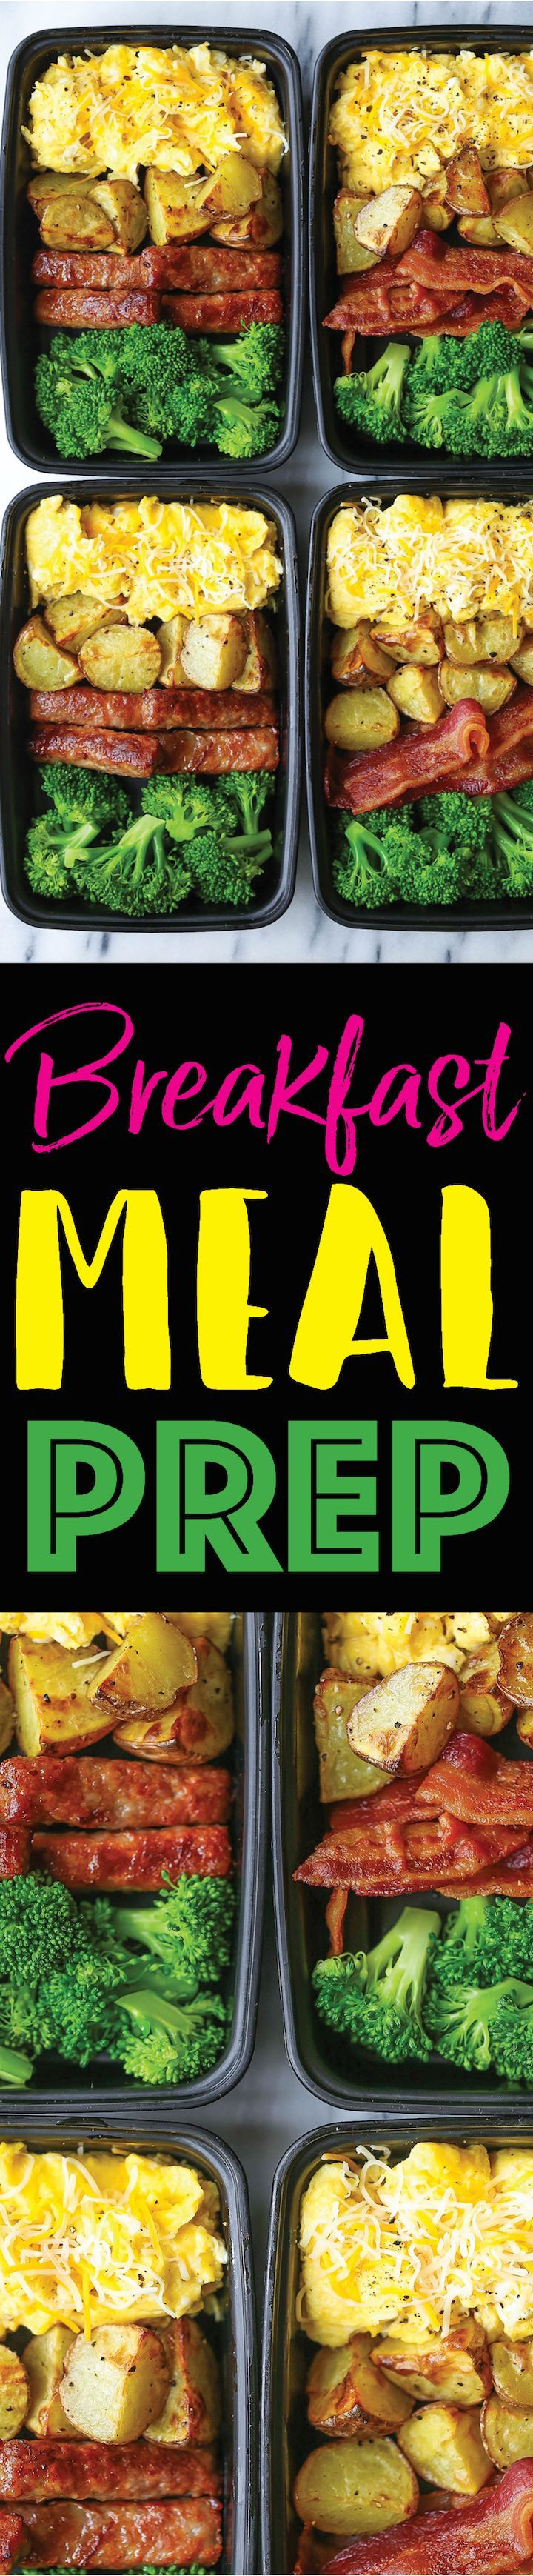 Breakfast Meal Prep – Now you can sleep in and eat a filling and hearty breakfas…